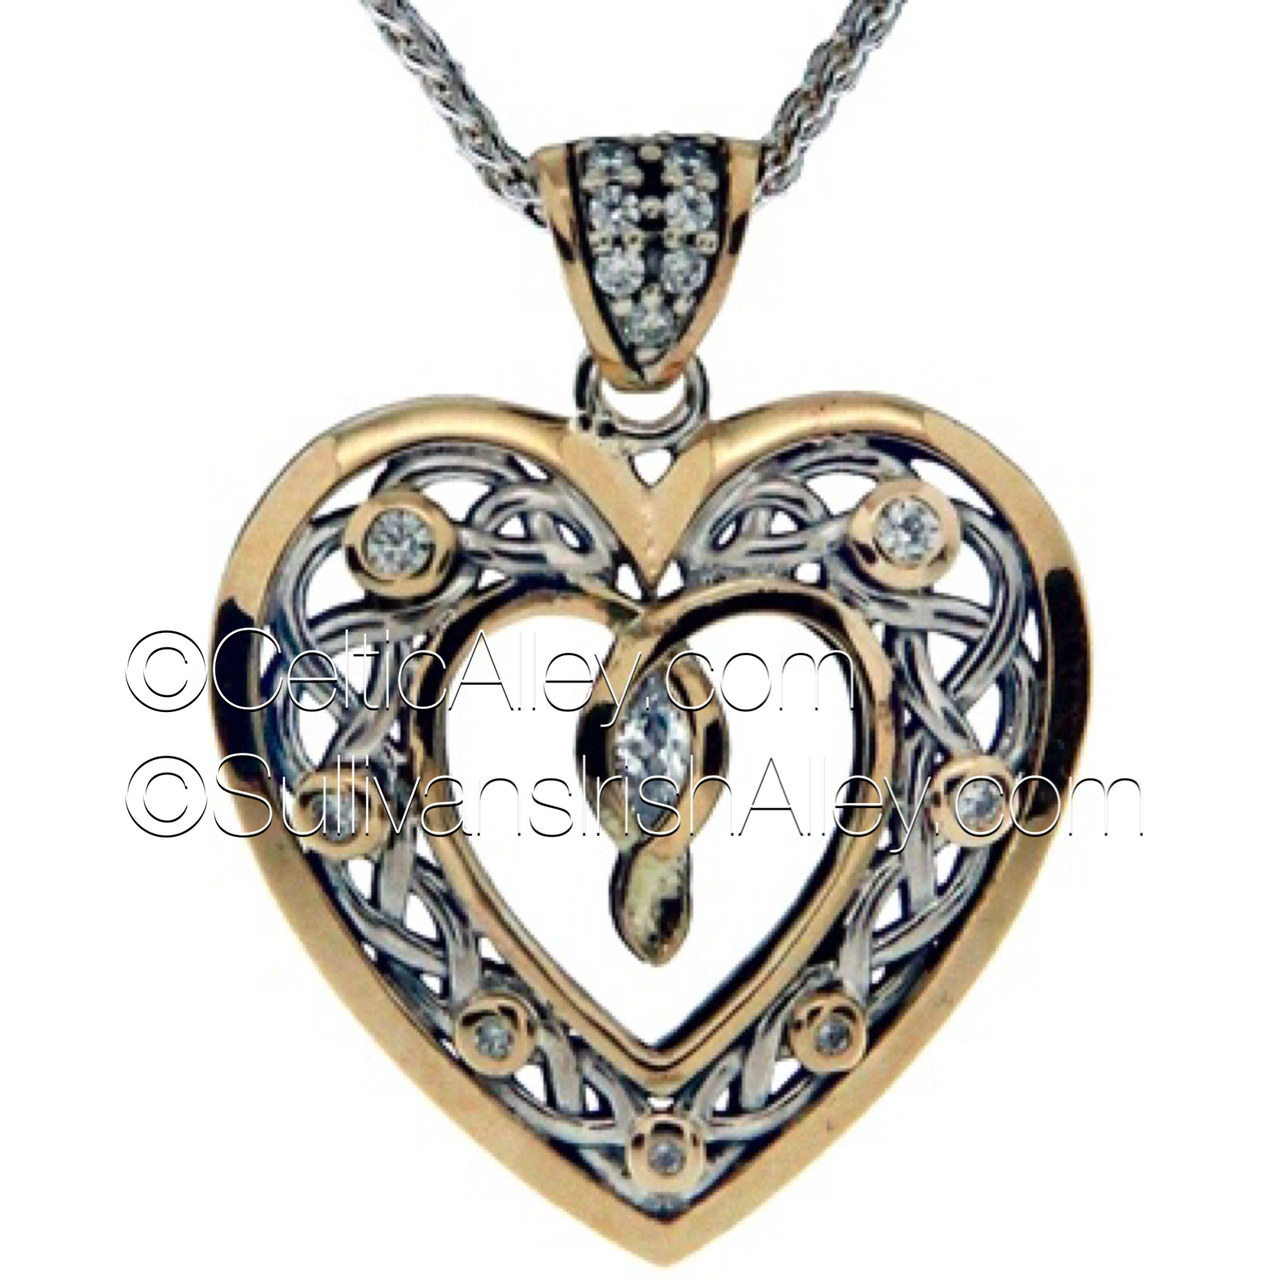 Keith jacks new sterling silver with 10k yellow gold cubic zirconia keith jacks new sterling silver with 10k yellow gold cubic zirconia stone set heart pendant ppx9165 mozeypictures Gallery